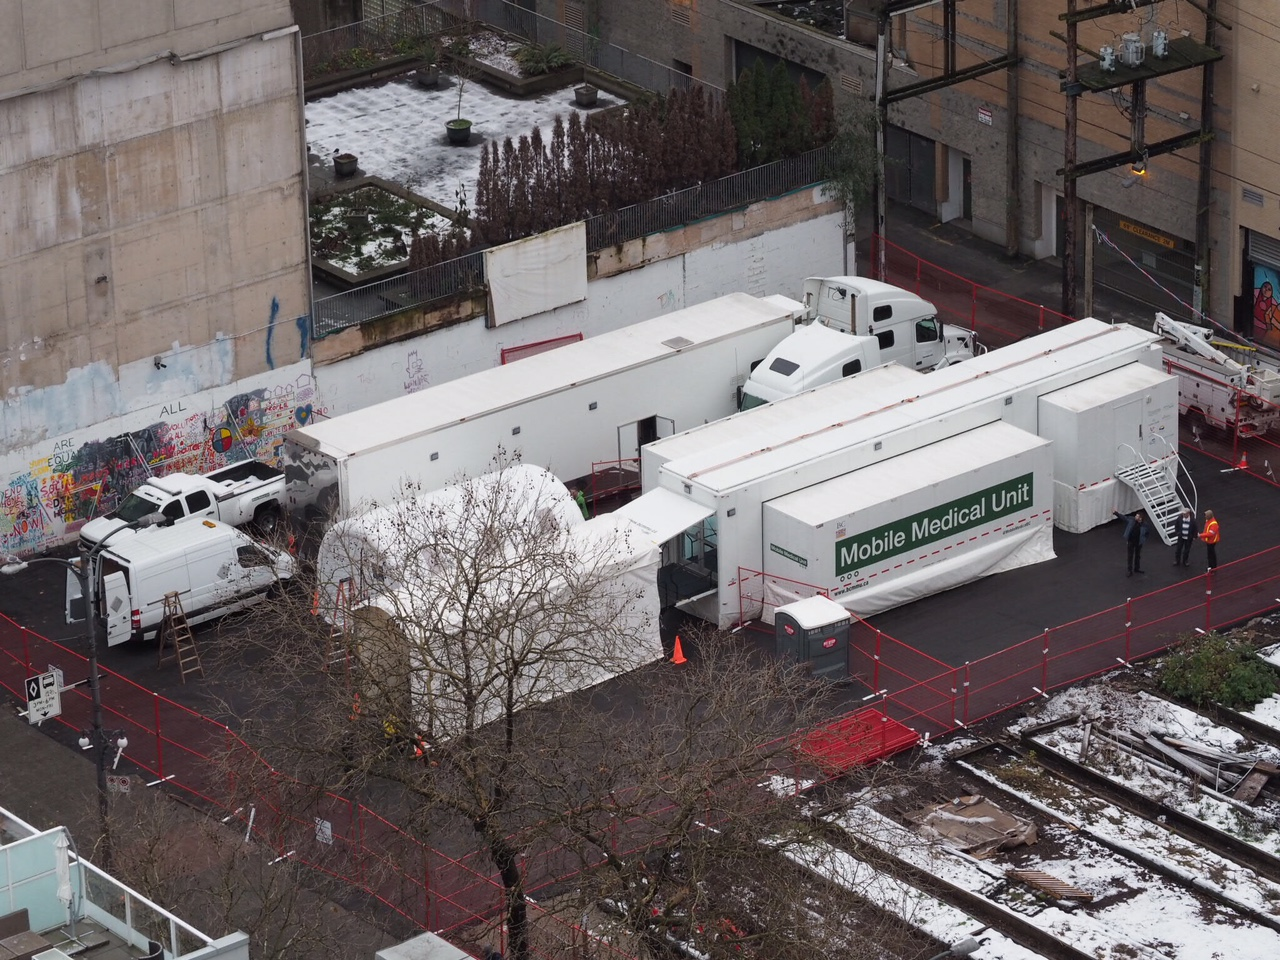 Aerial image of MMU in downtown eastside Vancouver